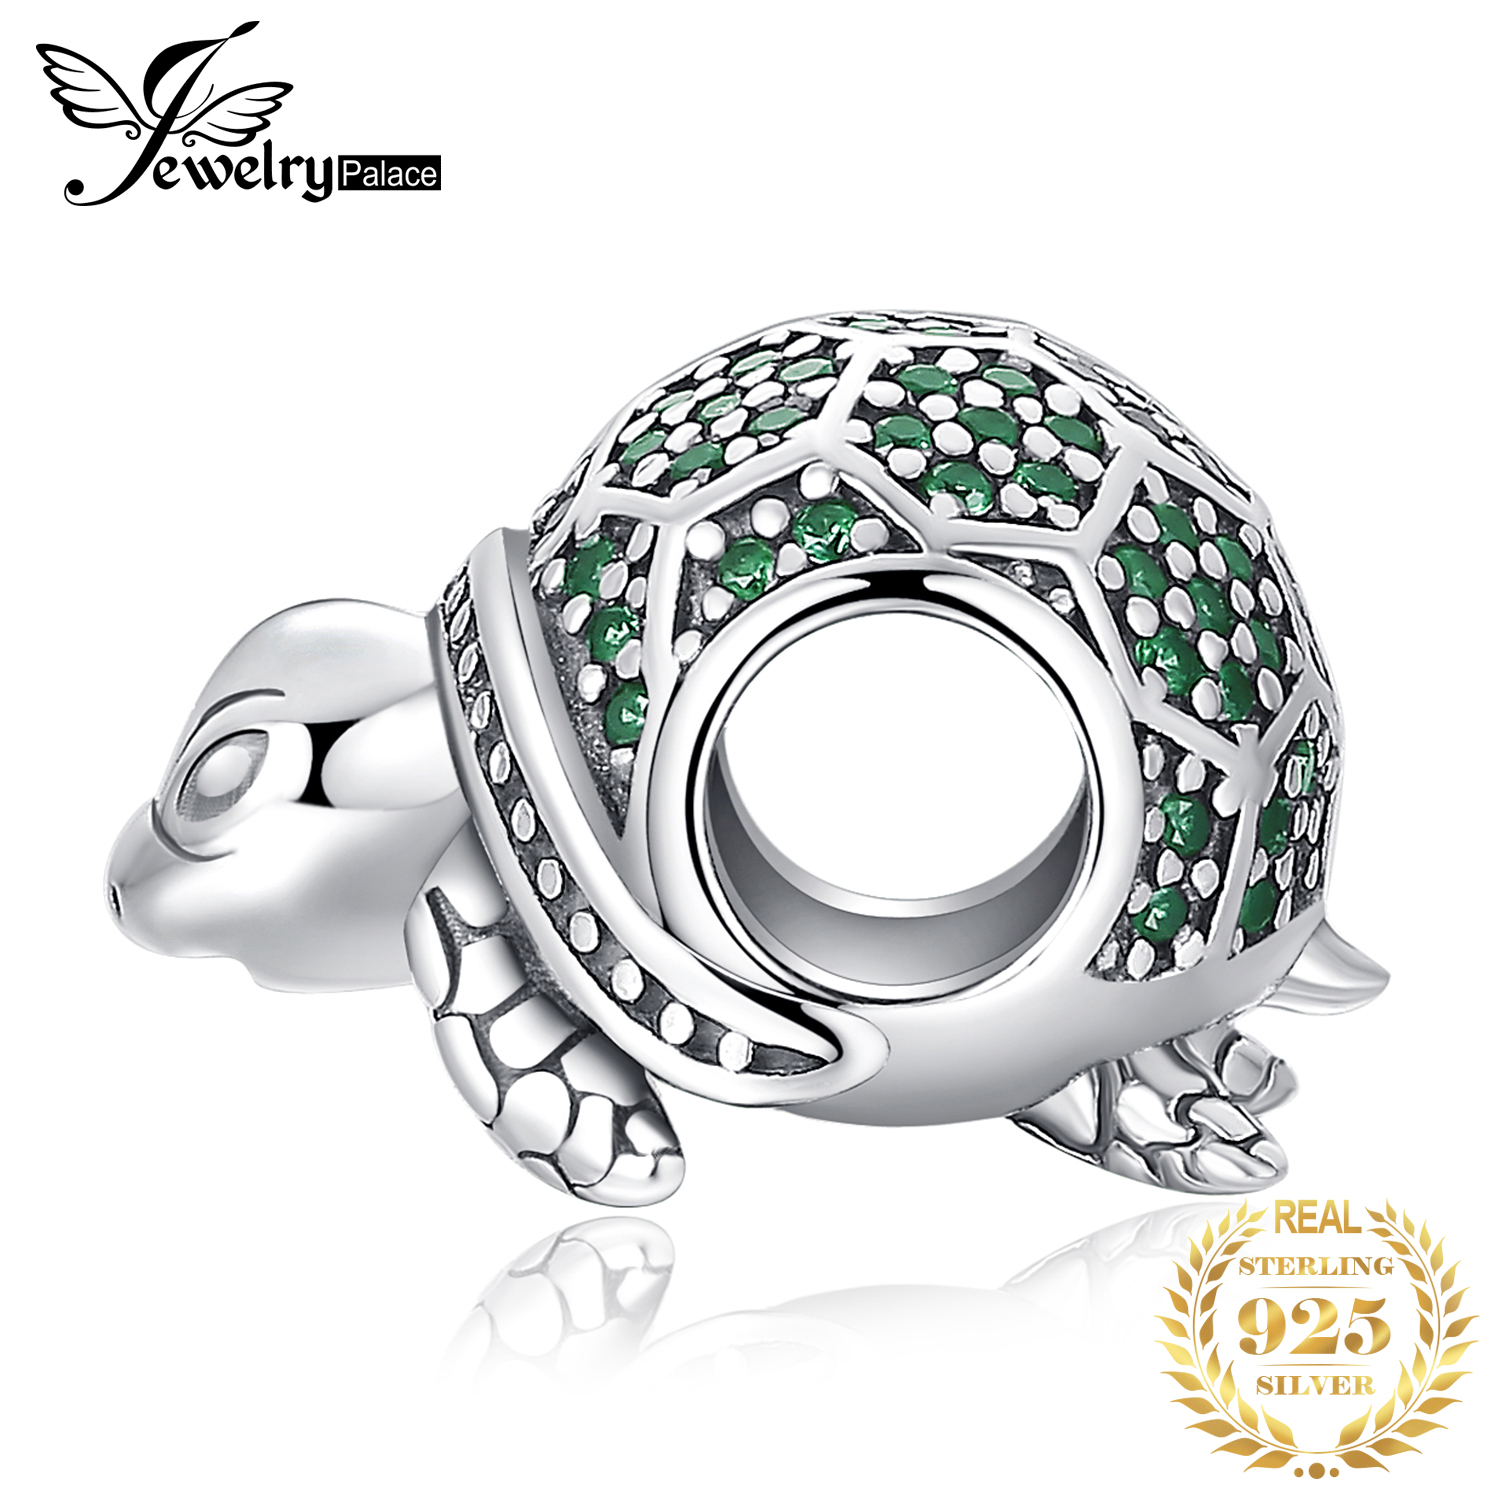 JewelryPalace Turtle 925 Sterling Silver Beads Charms Silver 925 Original For Bracelet Silver 925 original Beads Innrech Market.com